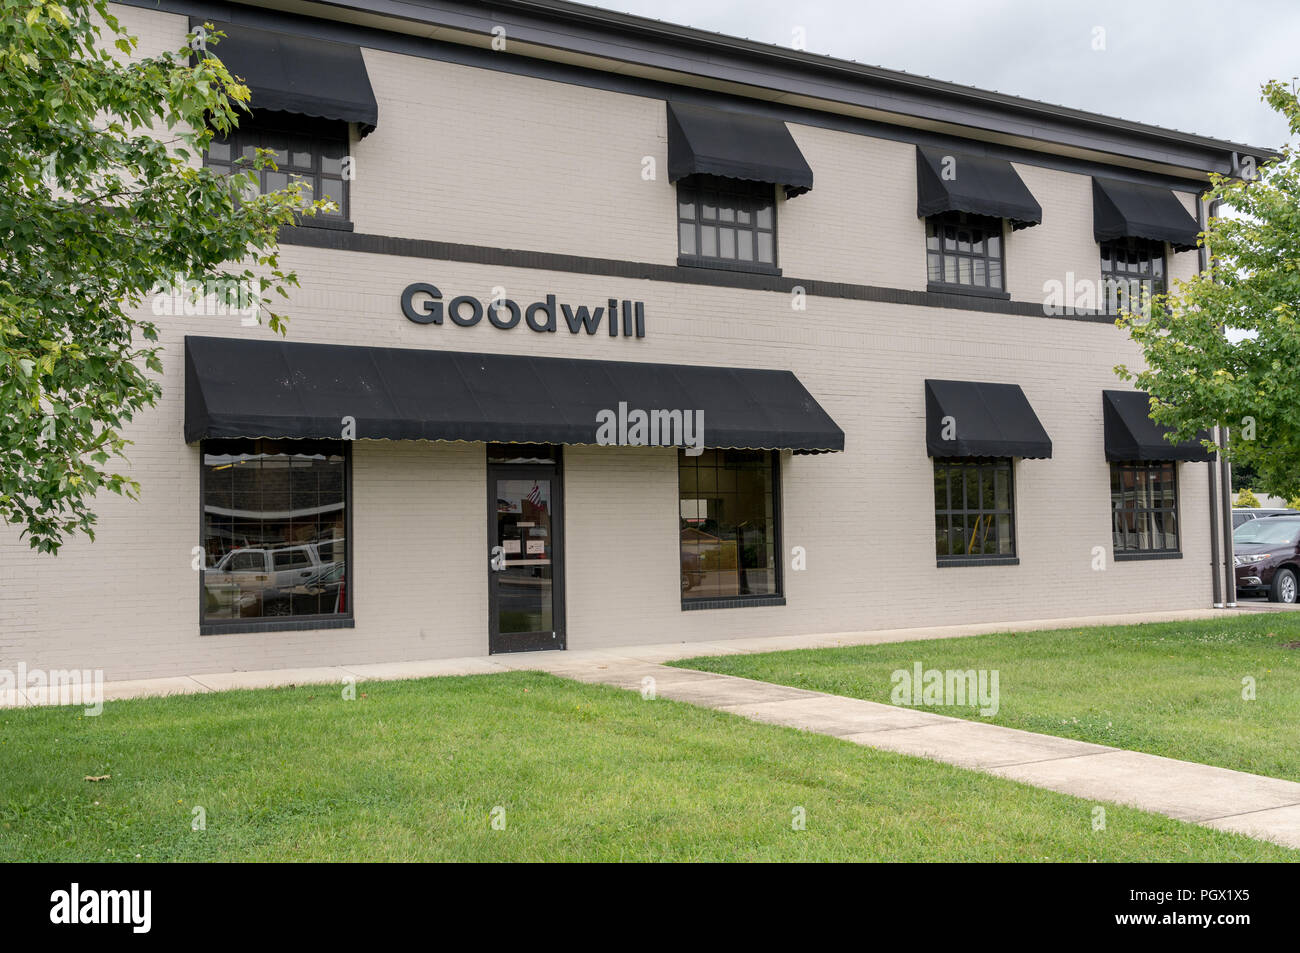 Goodwill charity shop in Winchester VA - Stock Image